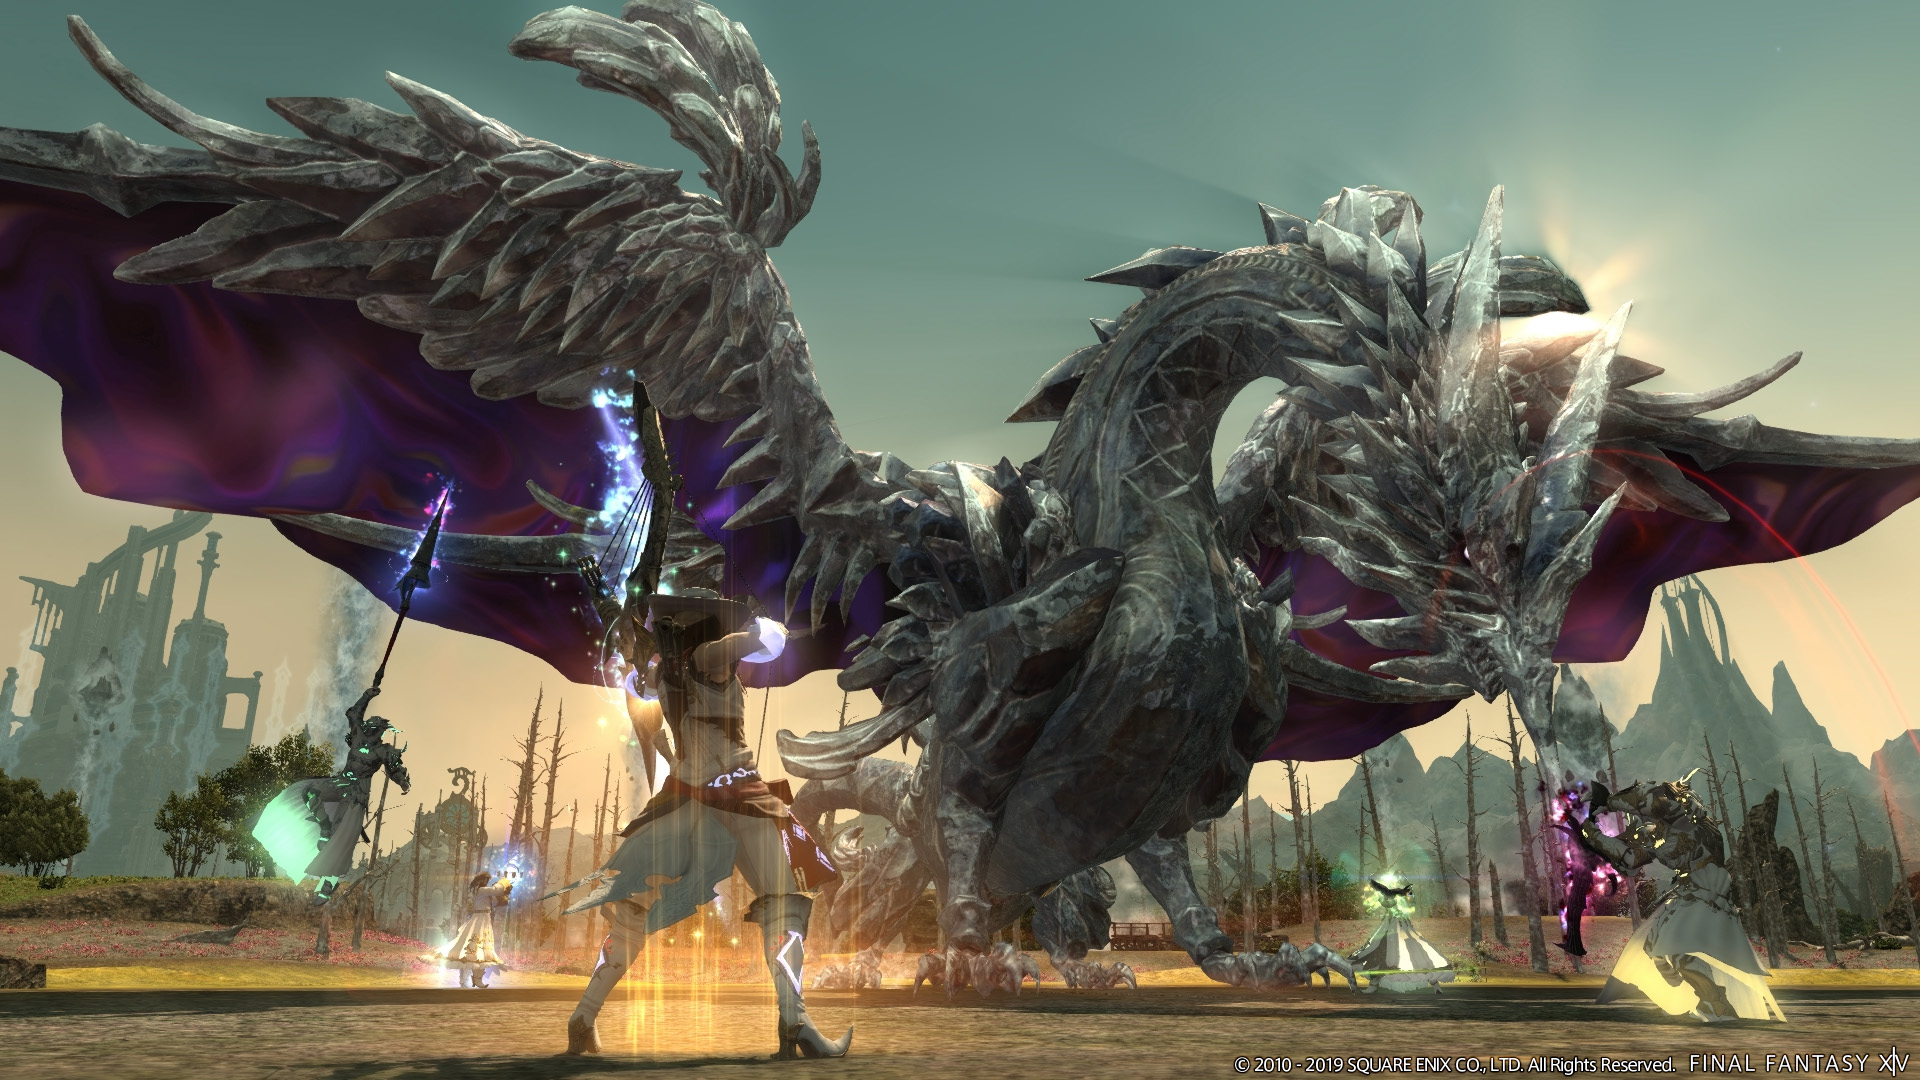 Final Fantasy XIV x Final Fantasy XV Collaboration Screen 8